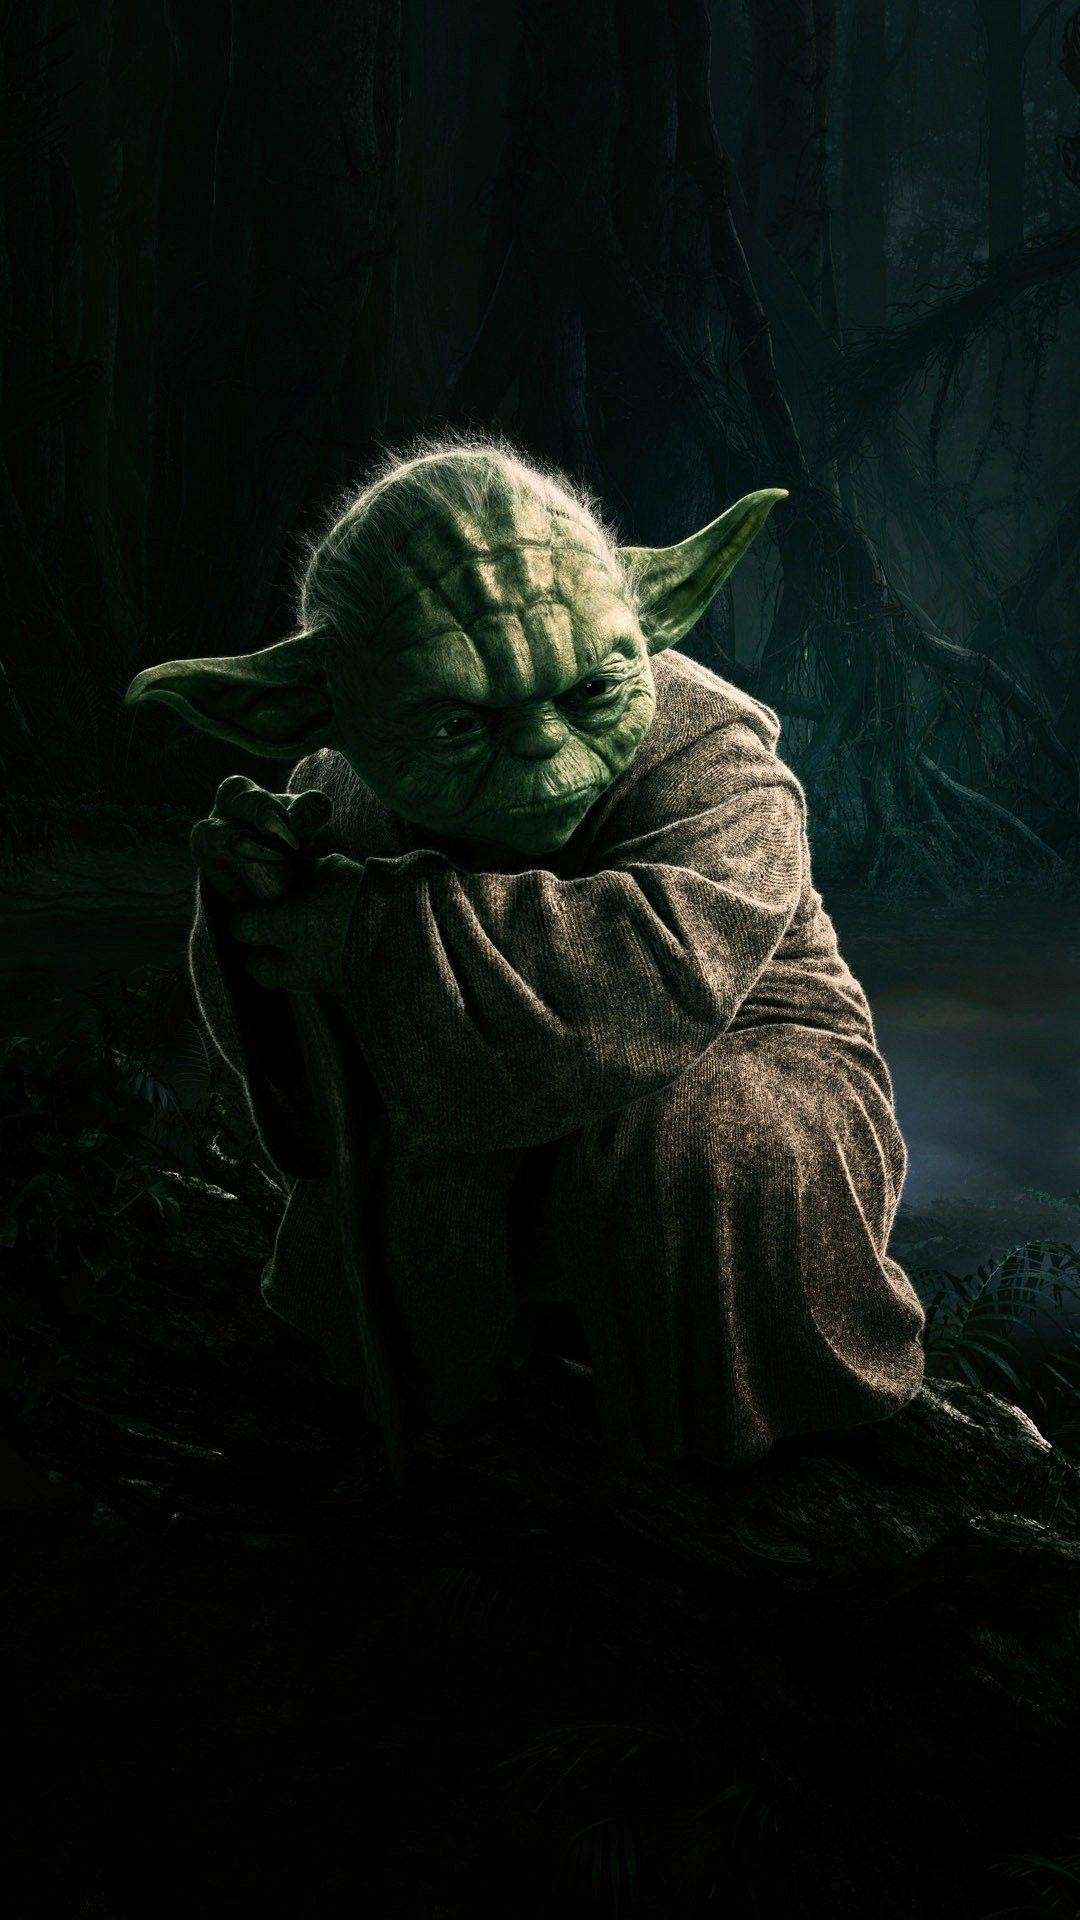 1080x1920 wallpaper.wiki-Epic-iPhone-Wallpapers-PIC-WPB006391. yoda-star-wars- wallpaper